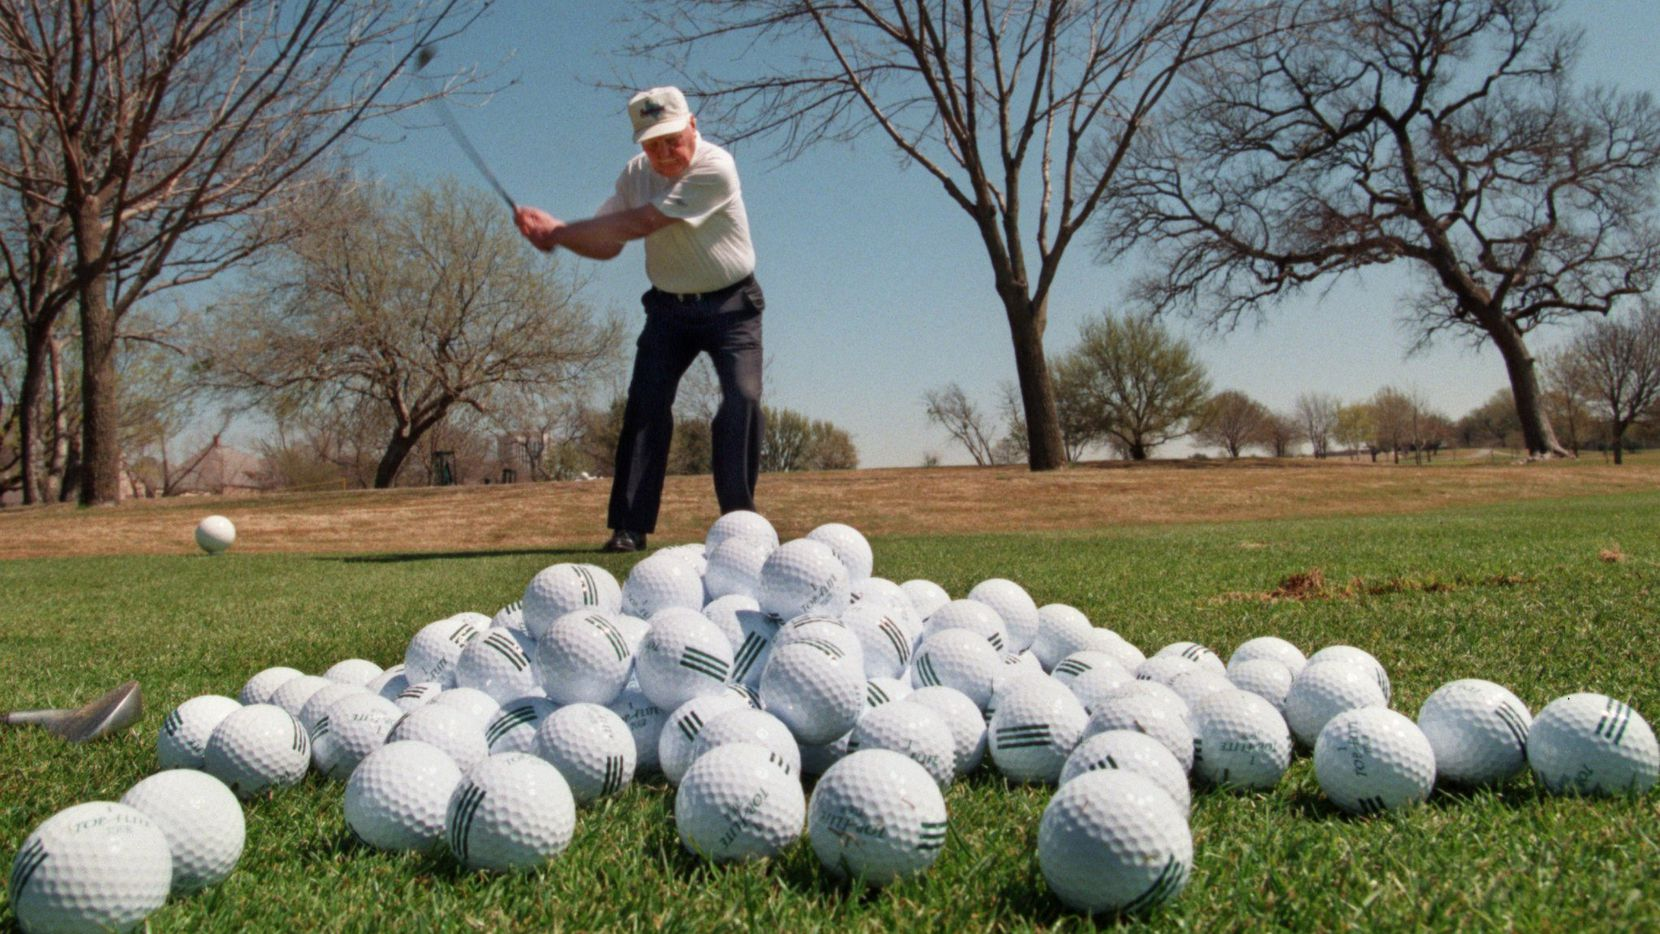 A member works on his game on the driving range at Preston Trail Country Club in Dallas. Membership in the invitation-only private club remains open only to men.